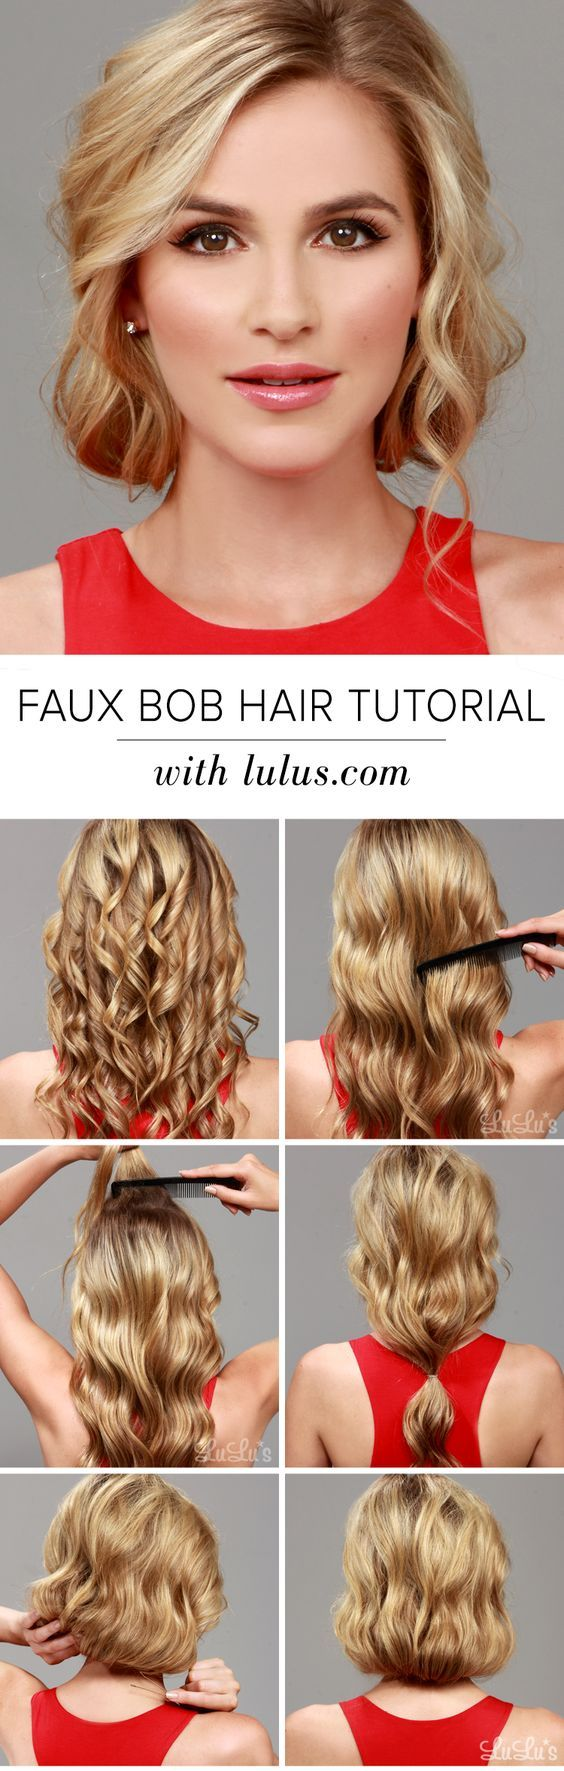 Fabulous 17 Best Ideas About Faux Bob Tutorial On Pinterest 1920S Hair Hairstyles For Women Draintrainus